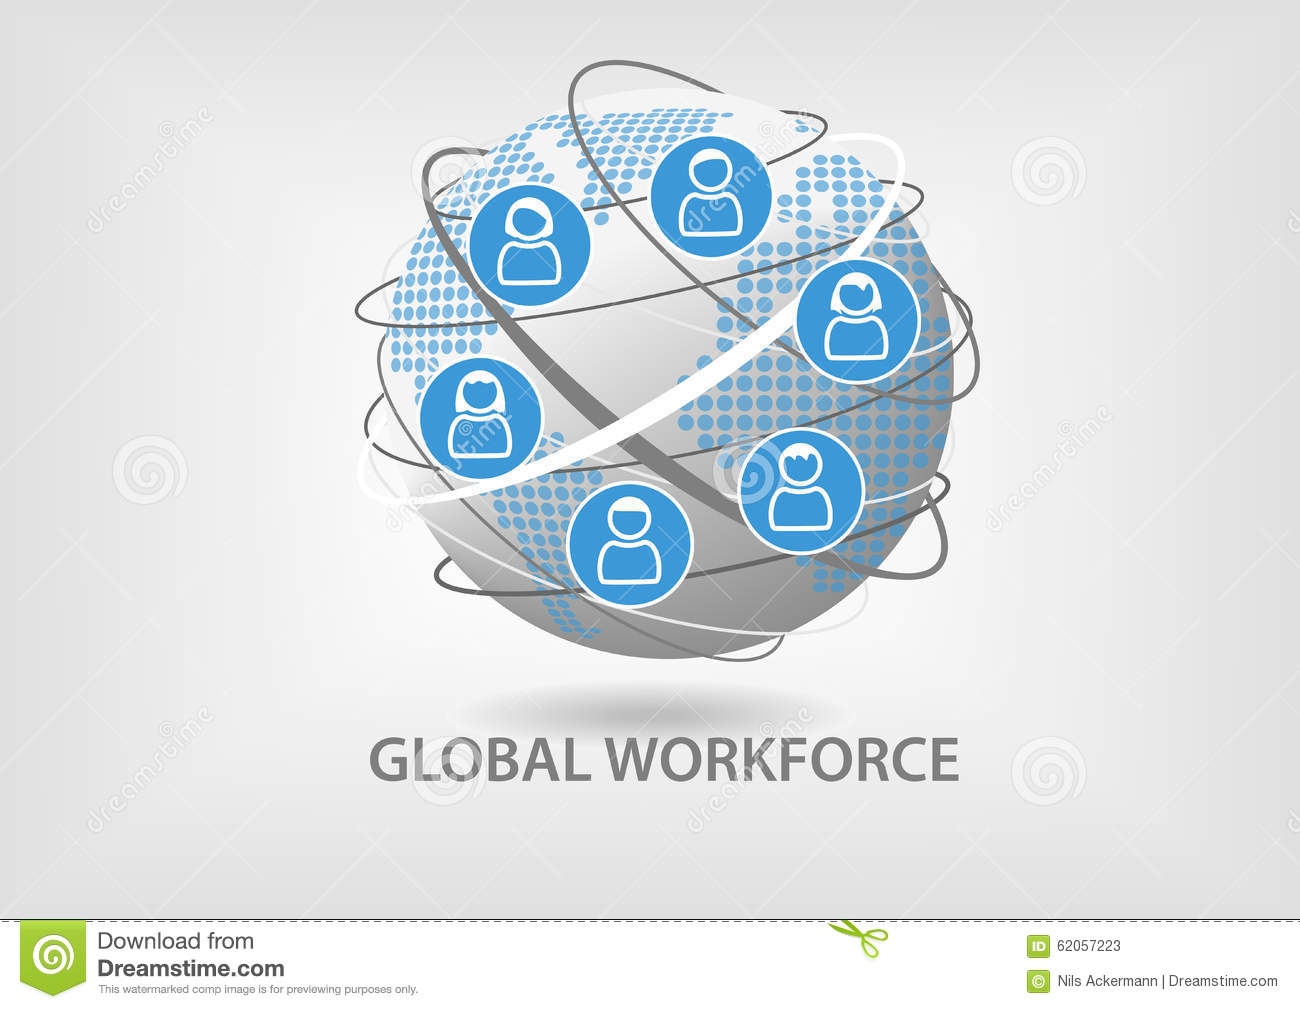 employees in an international workforce Start studying international hr ch 8 international workforce planning and staffing learn vocabulary, terms, and more with flashcards, games, and other study tools.